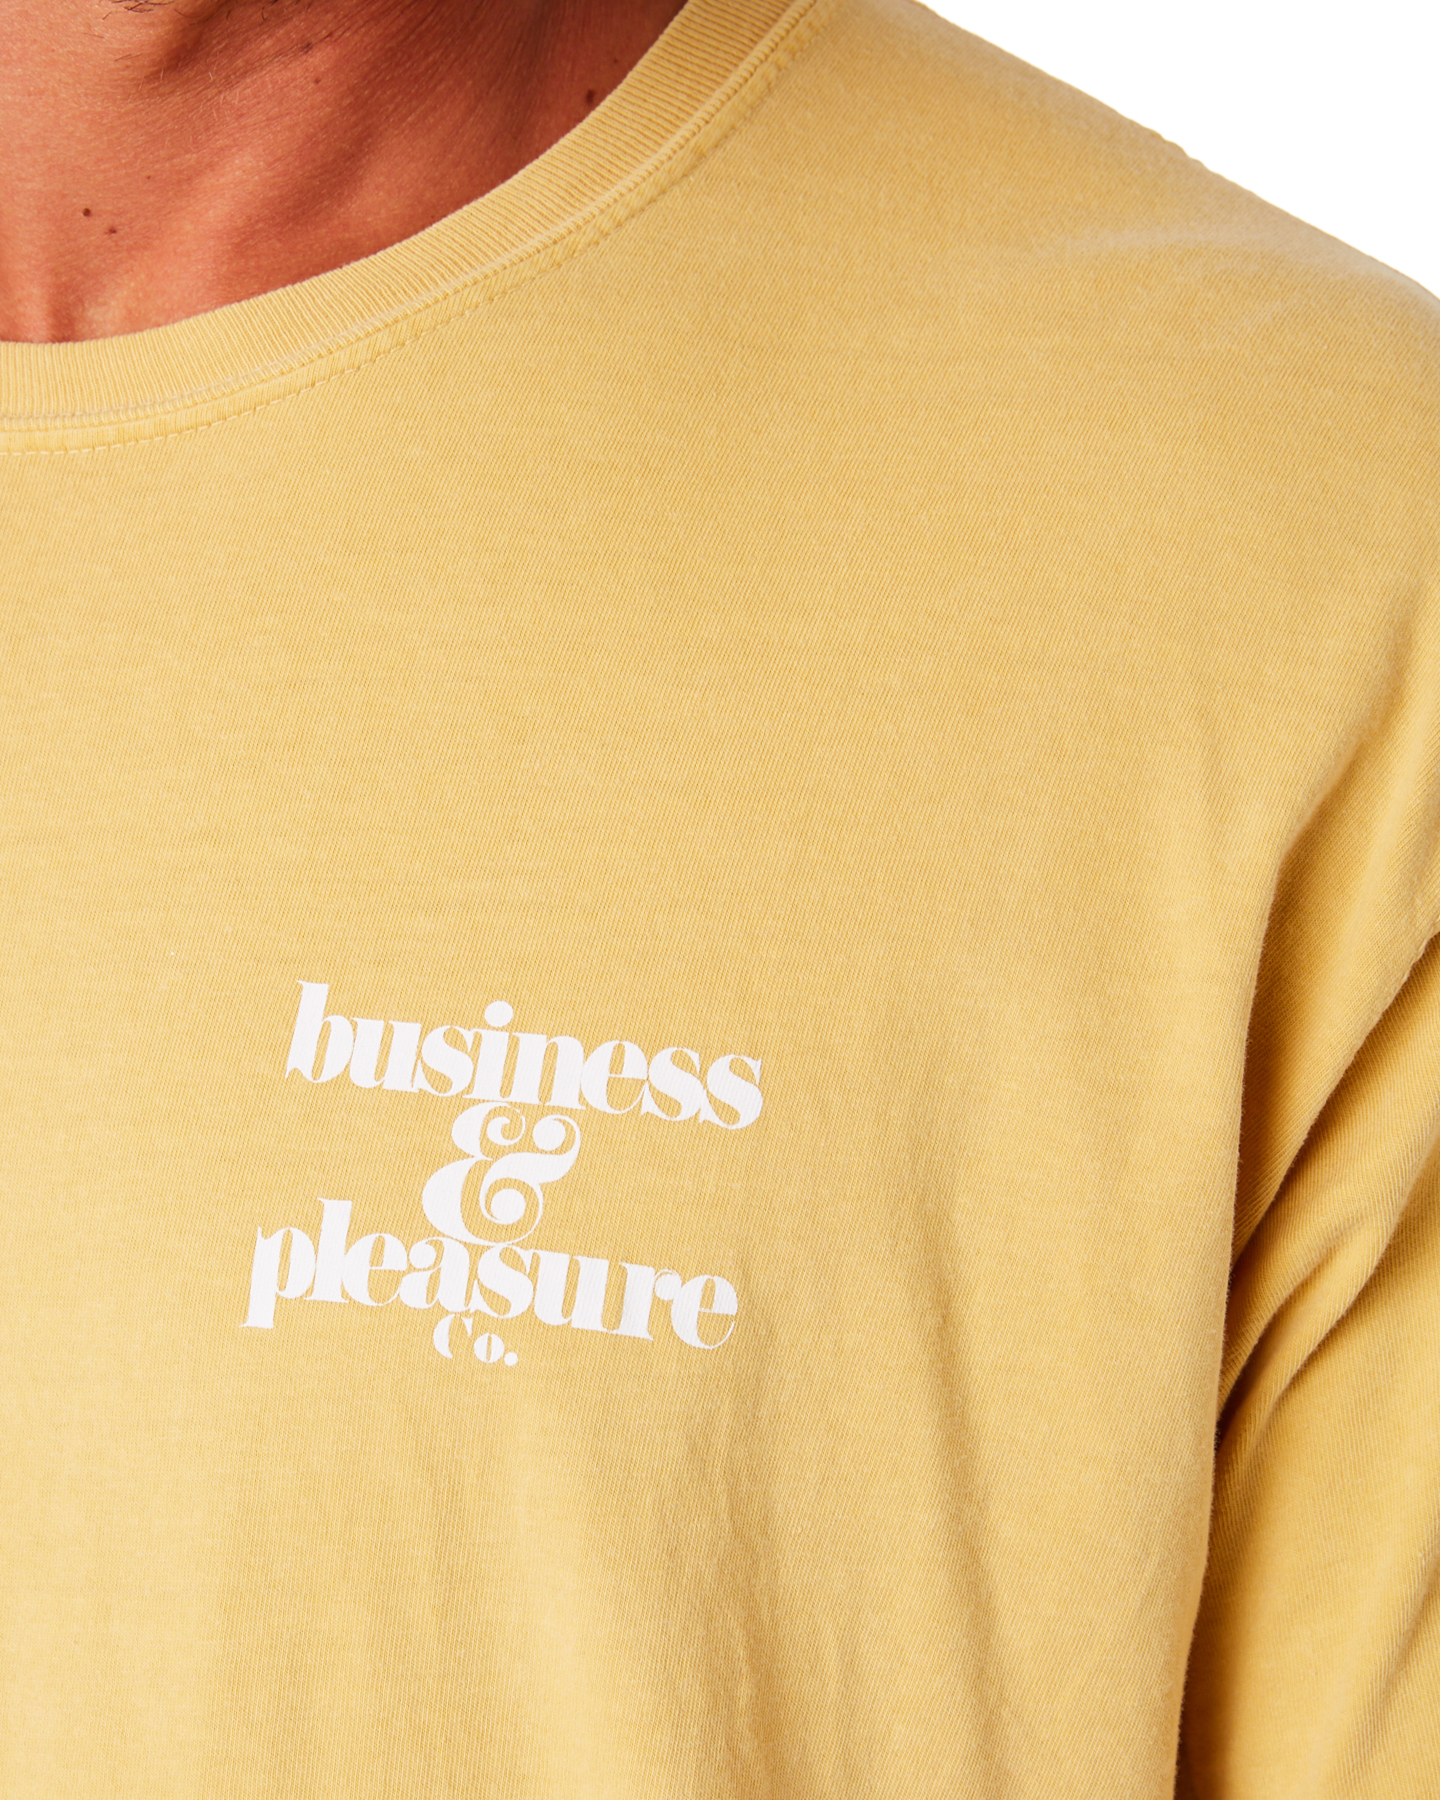 25bf64fa638a ... VINTAGE YELLOW MENS CLOTHING BUSINESS AND PLEASURE CO TEES -  BPS-BPC-VTG- ...